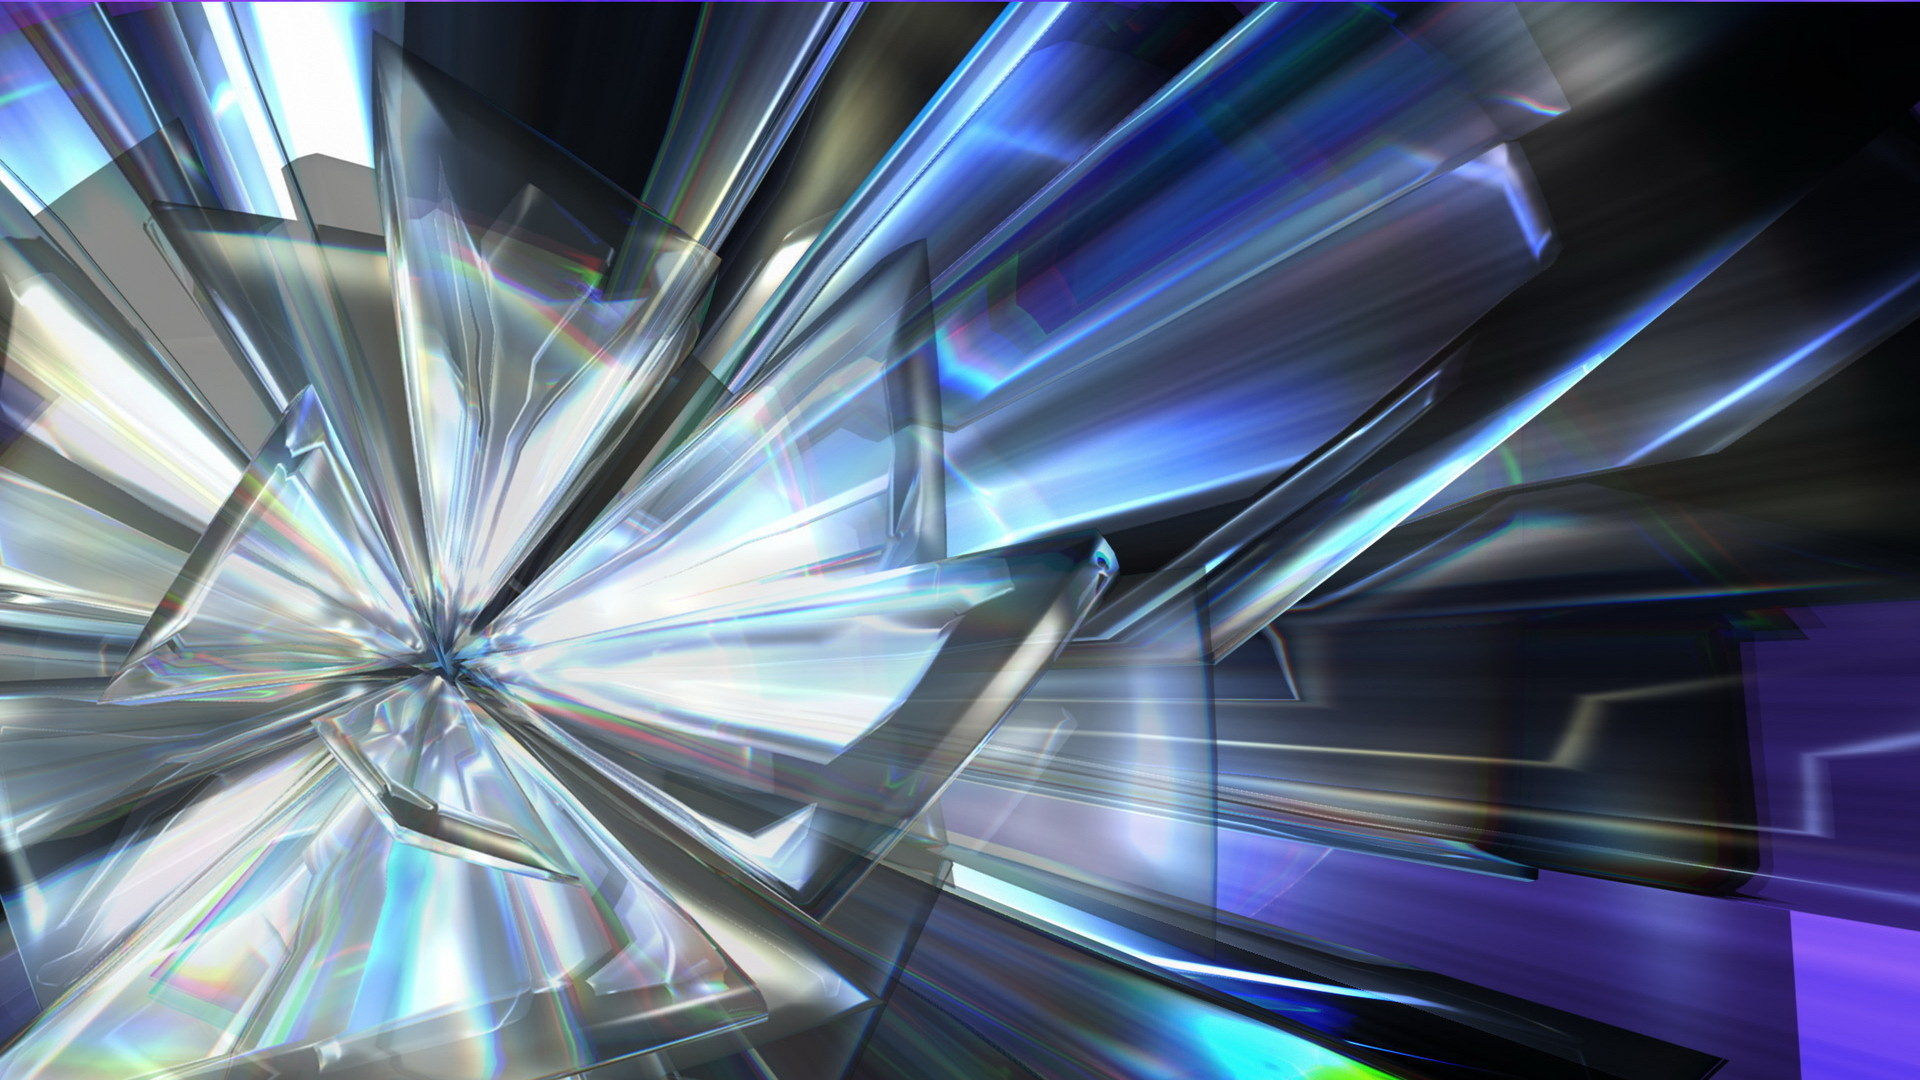 Res: 1920x1080, Image result for glass crystal